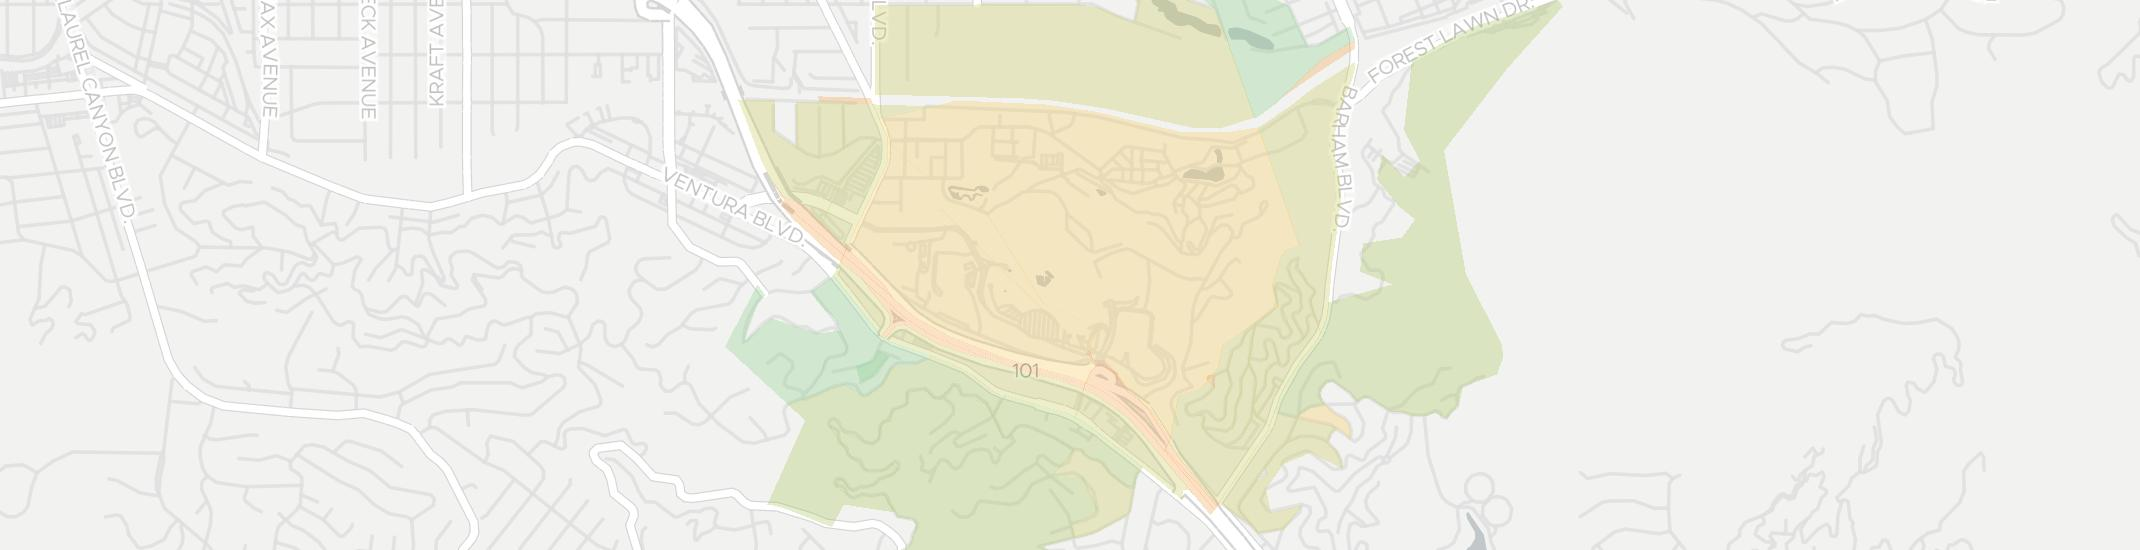 Universal City Internet Competition Map. Click for interactive map.